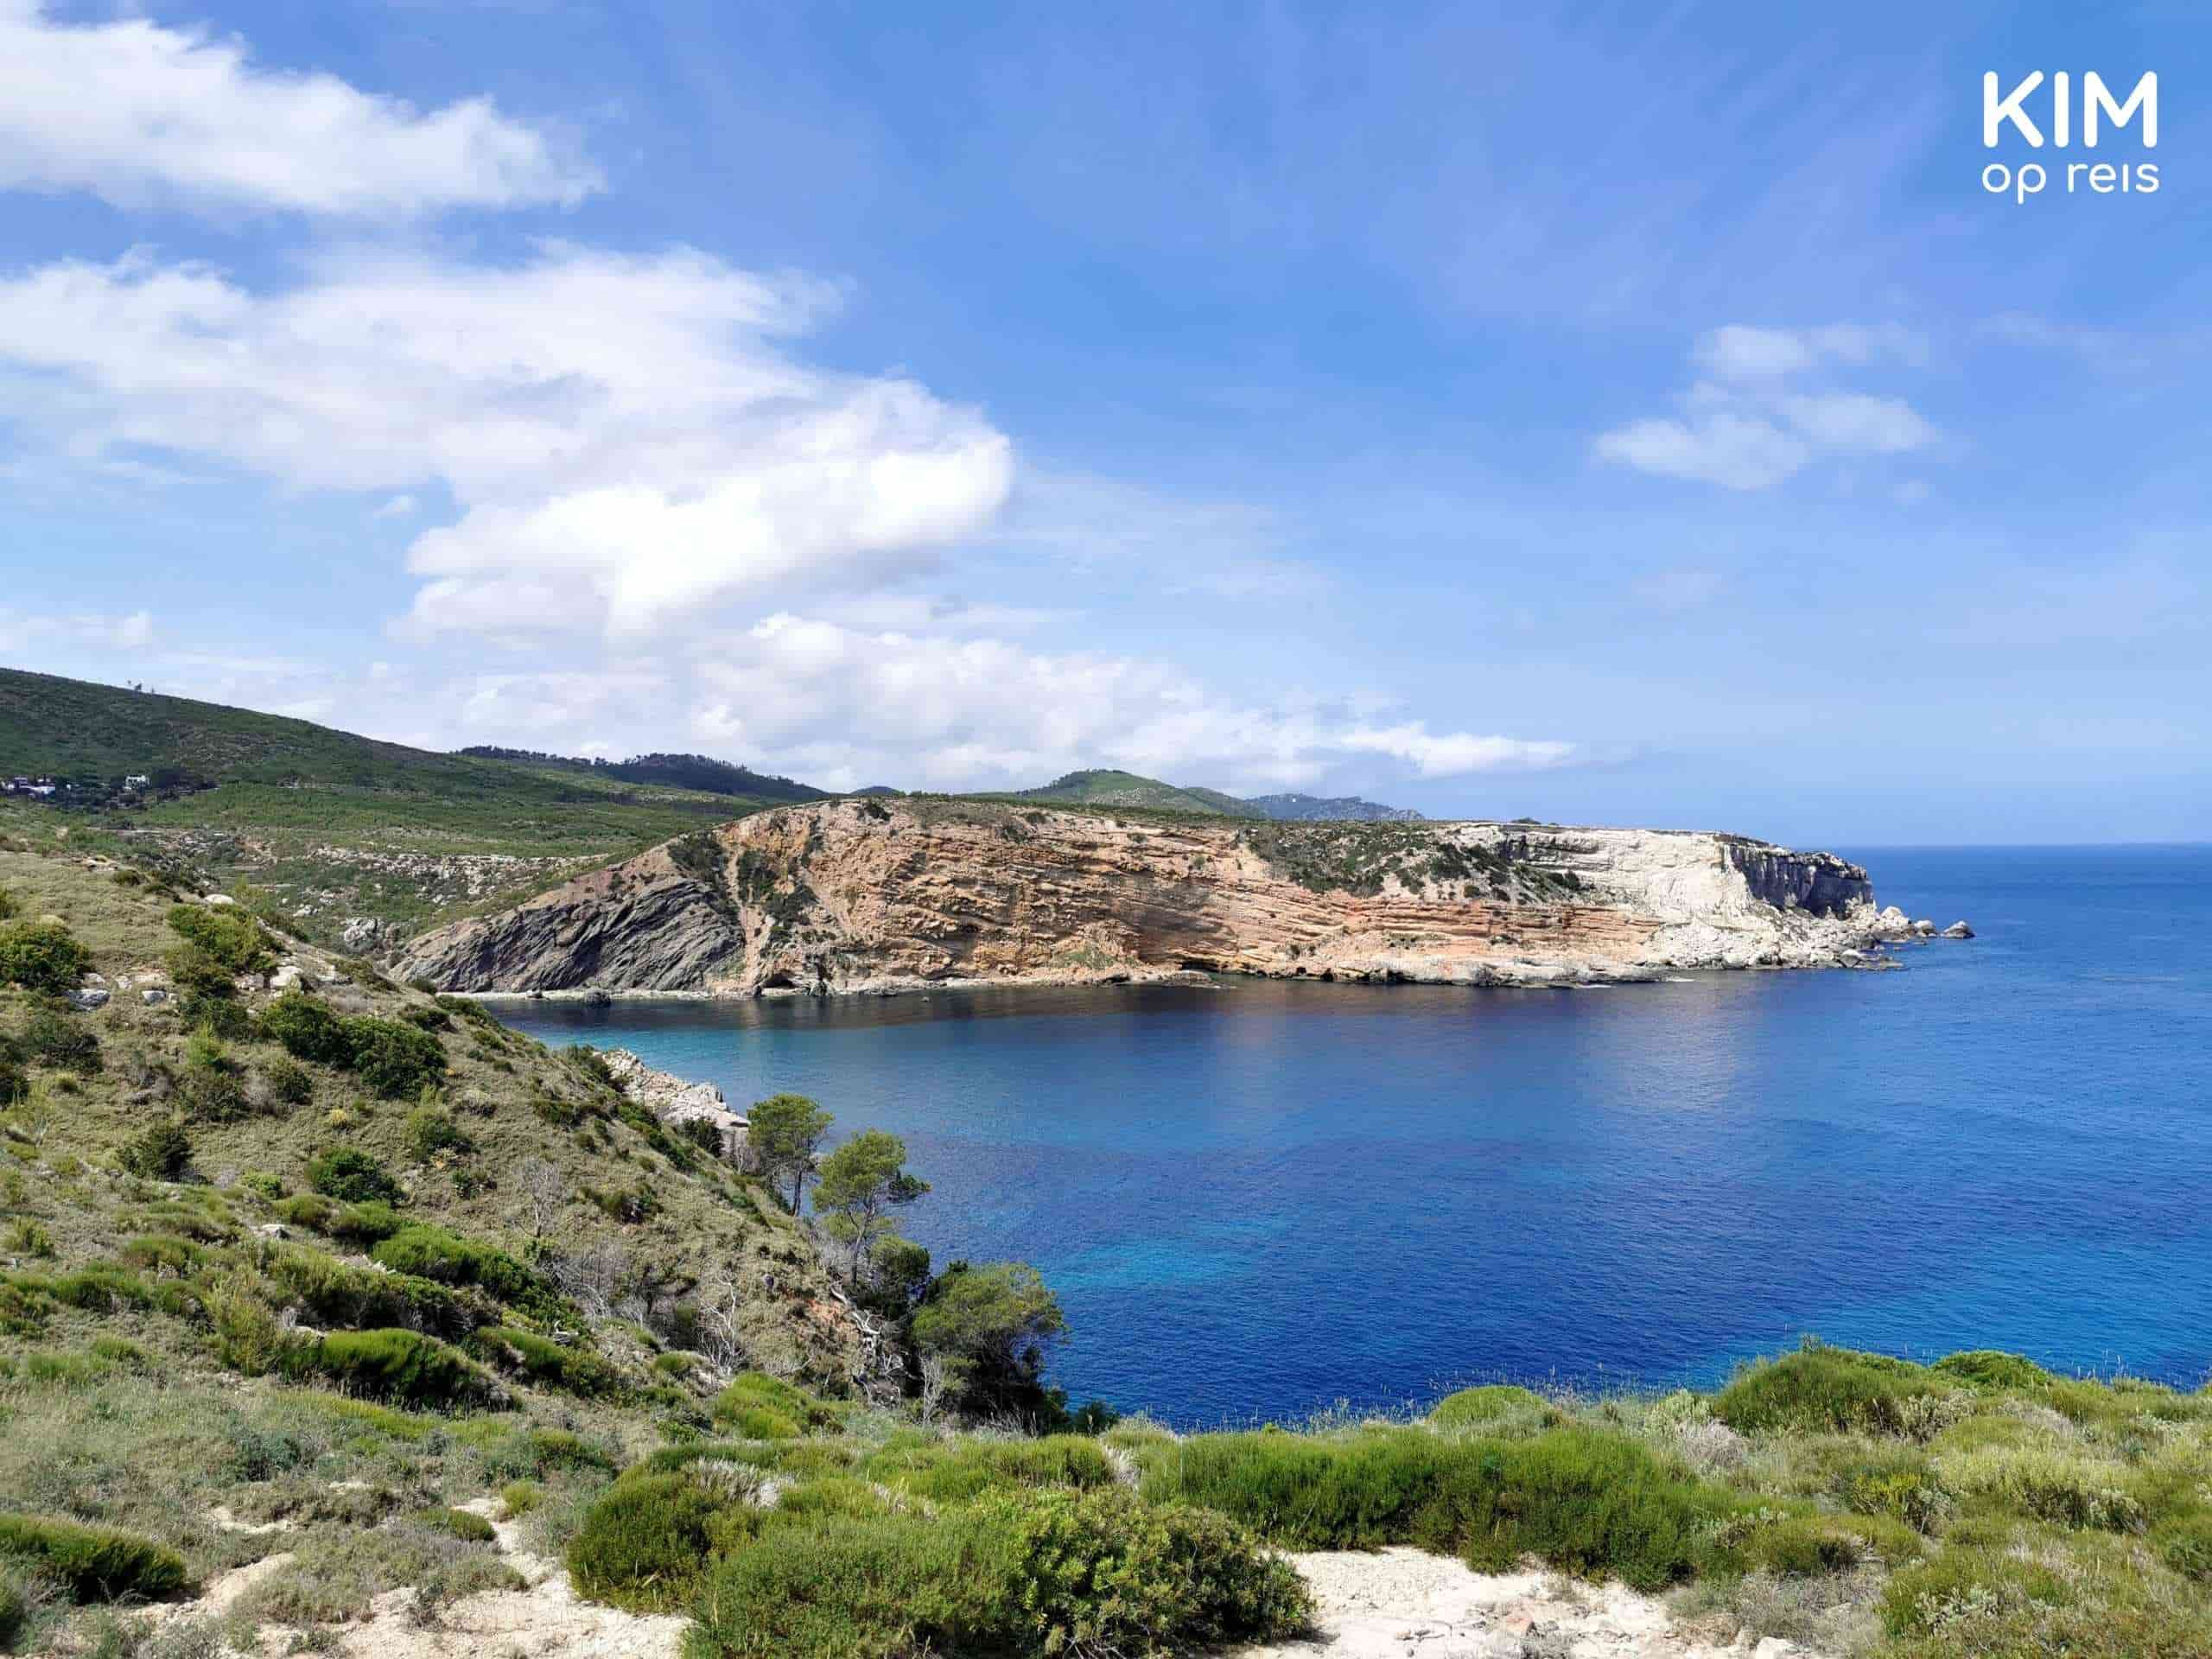 Punta Xarraco view: view over a large bay, sunny day